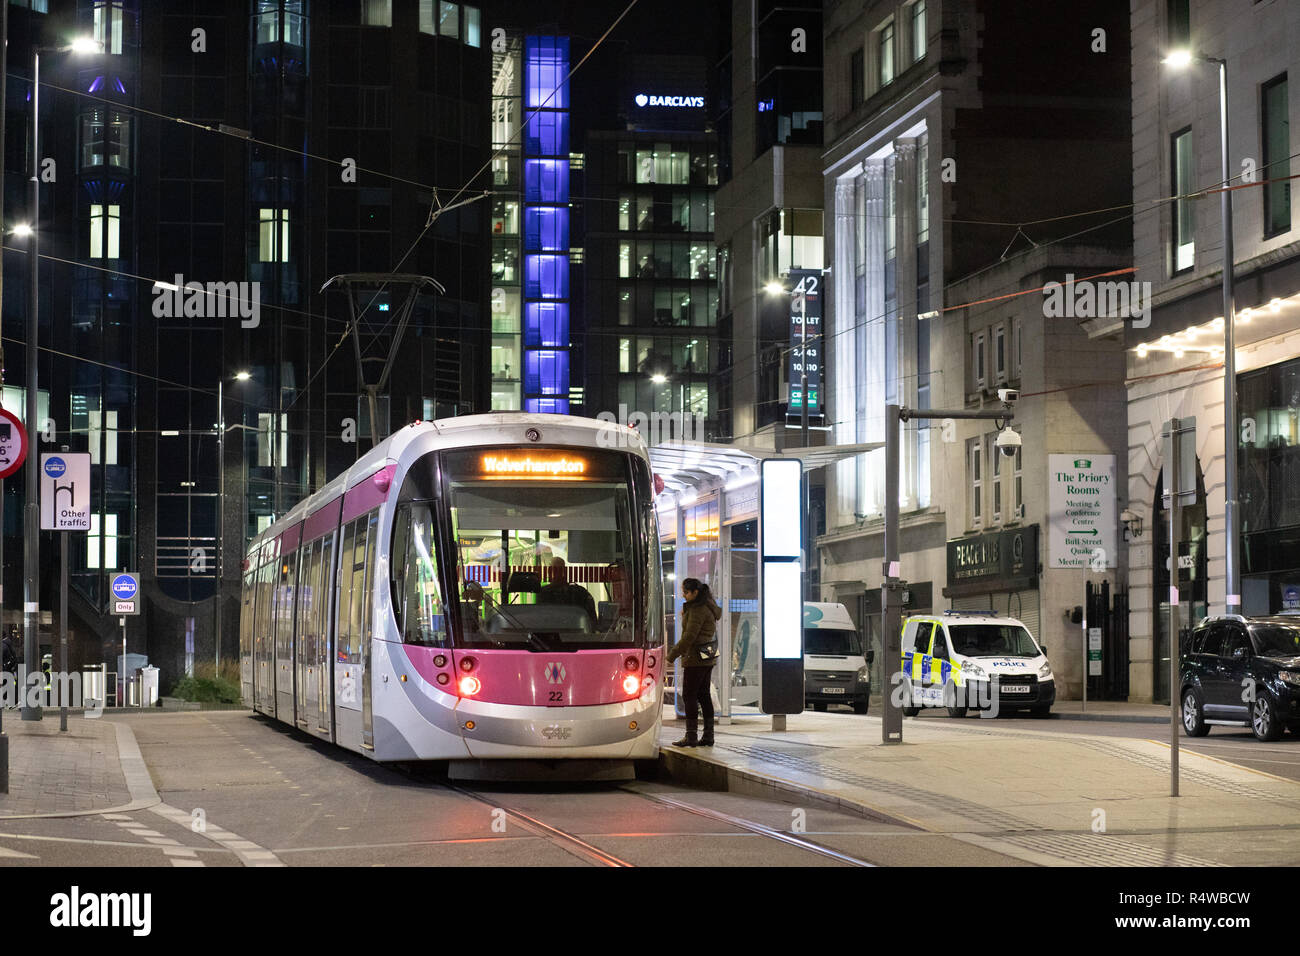 A Birmingham to Wolverhampton tram stops in Priory Queensway Birmingham to collect passengers - Stock Image